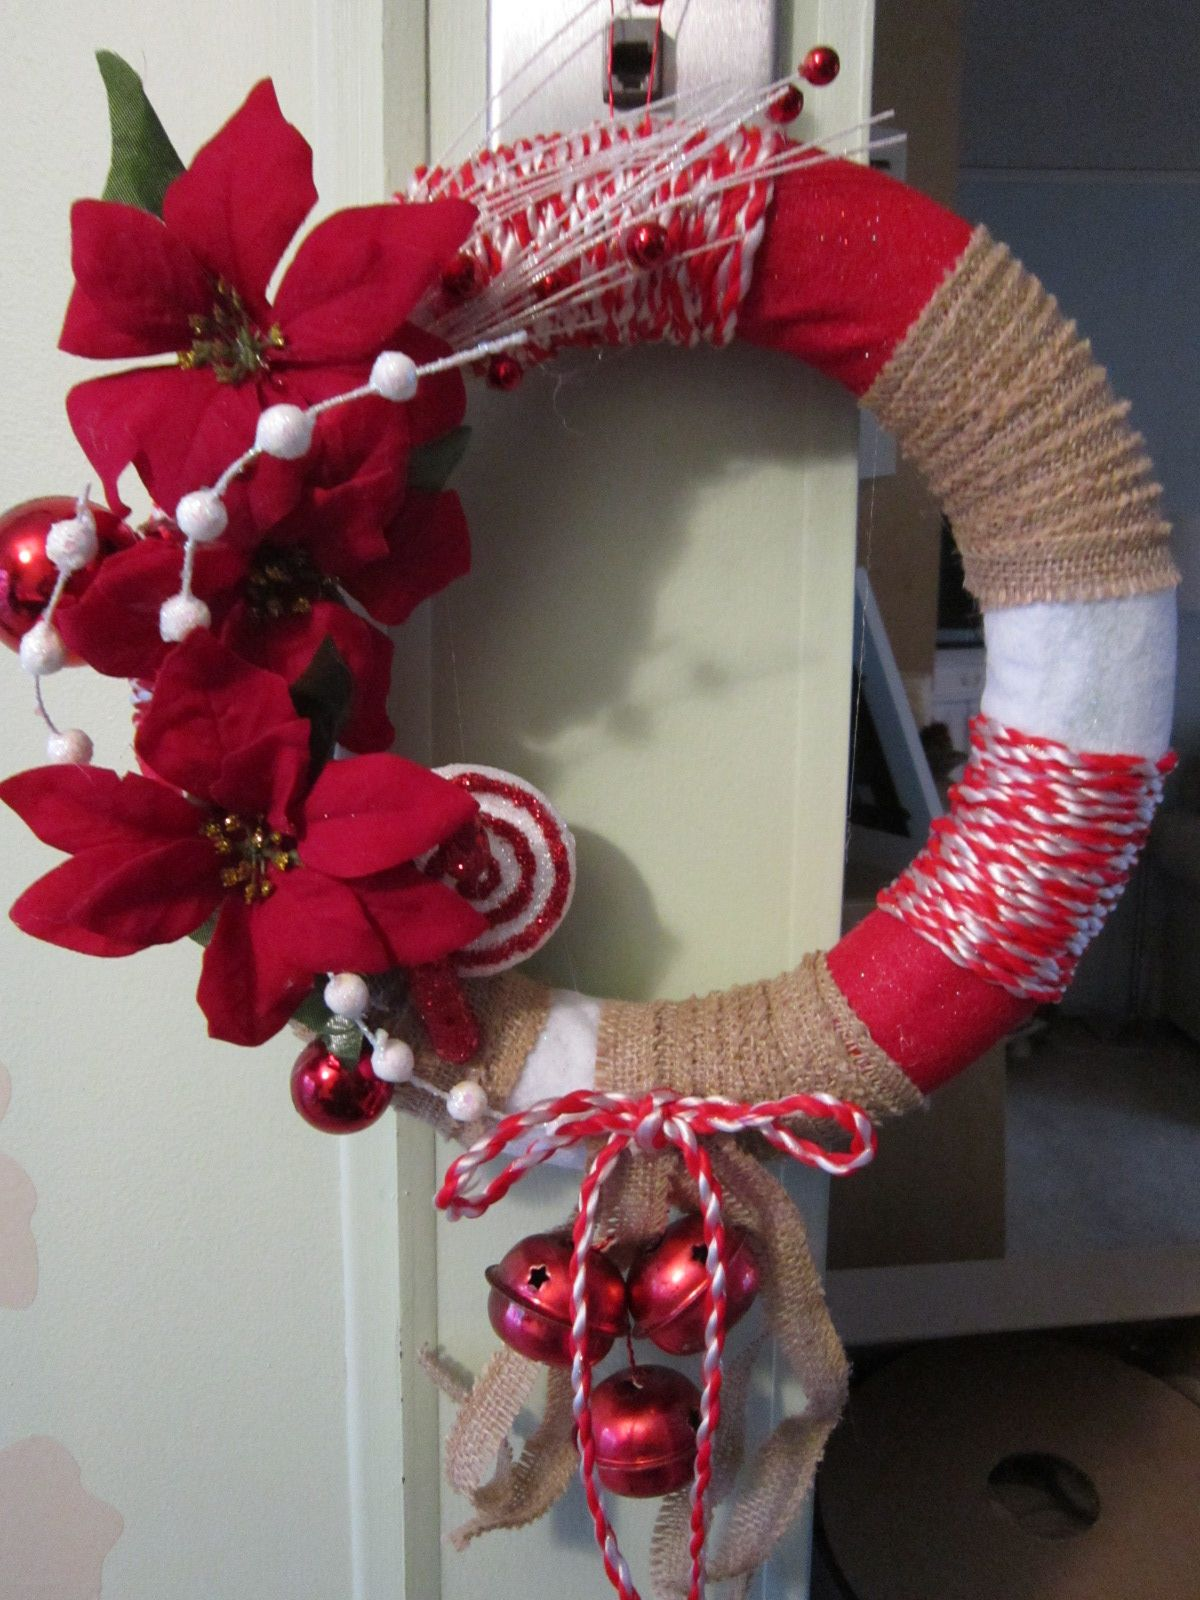 ...at the Cottage - small wrapped foam wreath using red & white felt, burlap and red & white cord with poinsettias and bells created by DonElla Nielsen